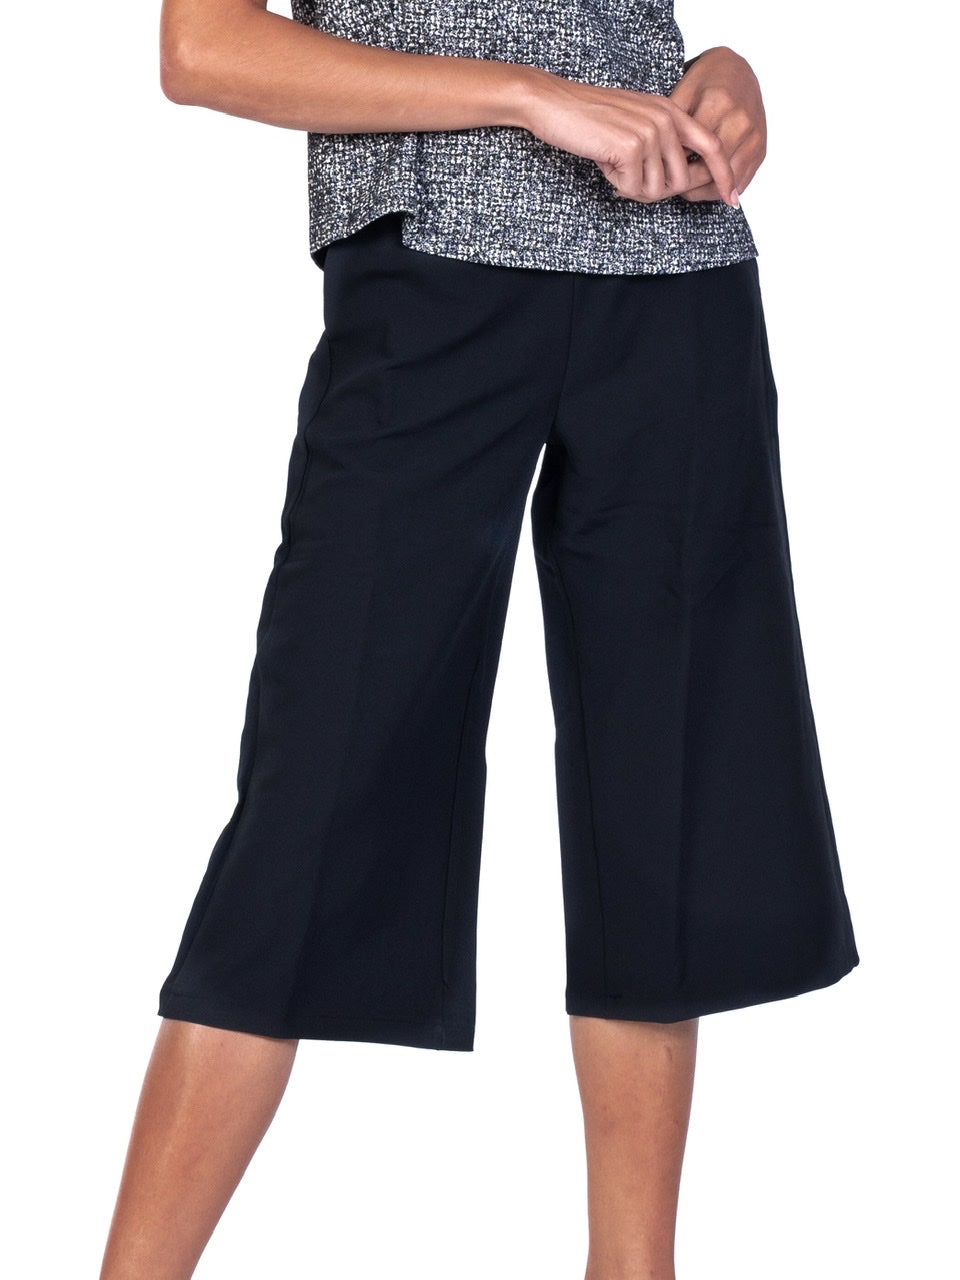 CULOTTES WITH ELASIC WAISTBAND